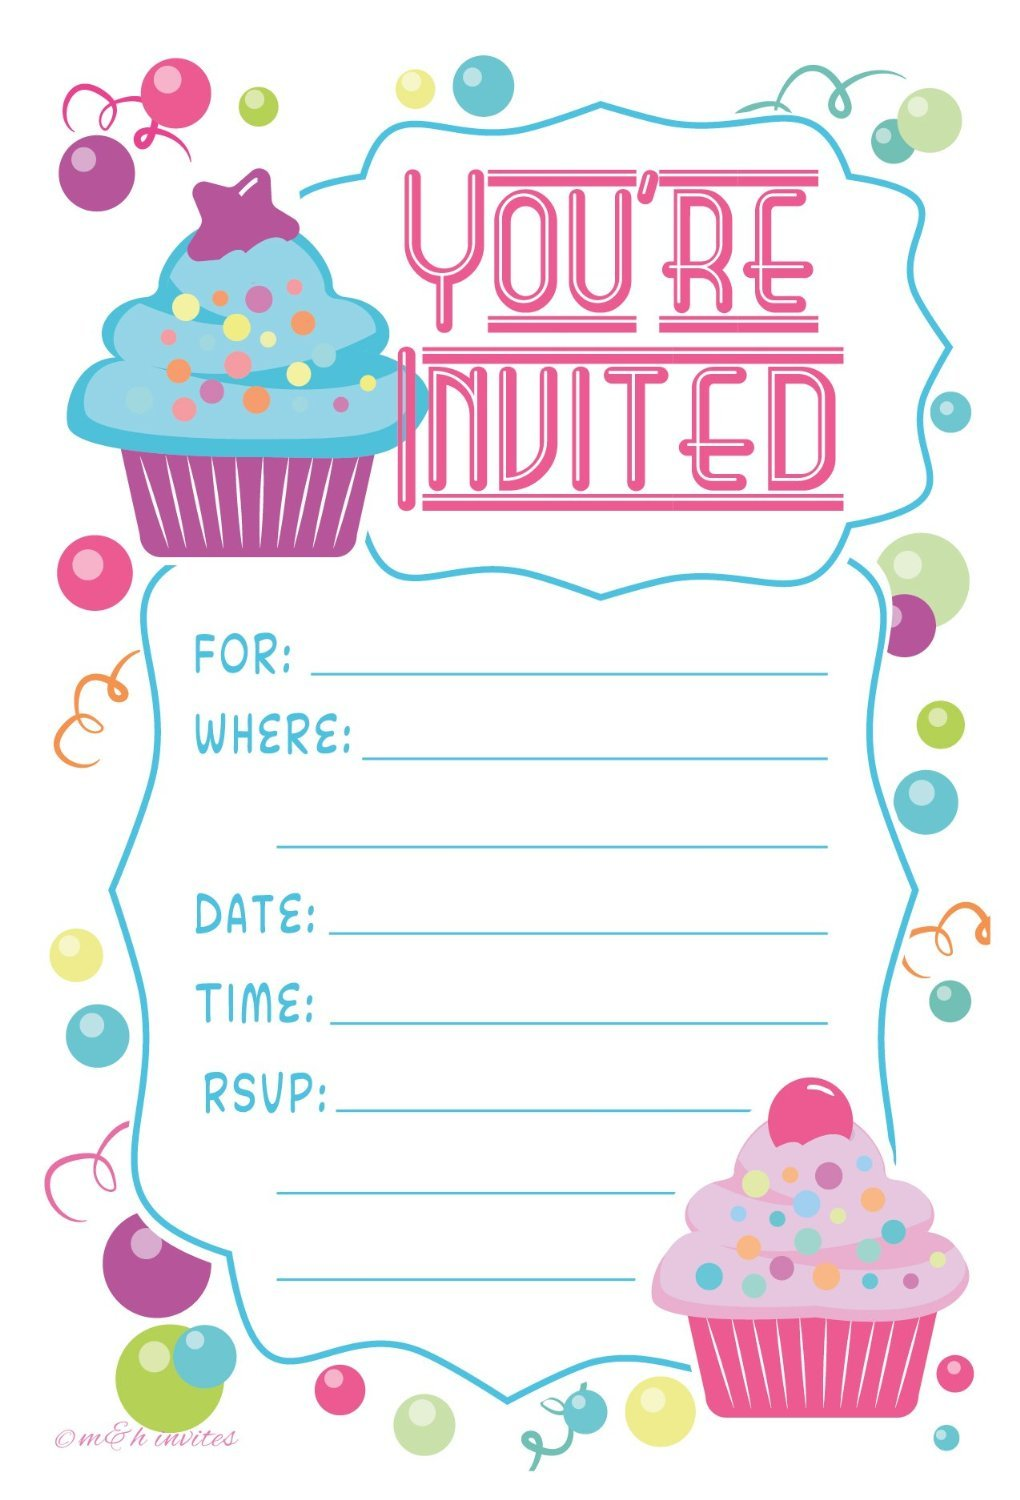 Amazon.com: Cupcake Theme Birthday Party Invitations - Fill In ...